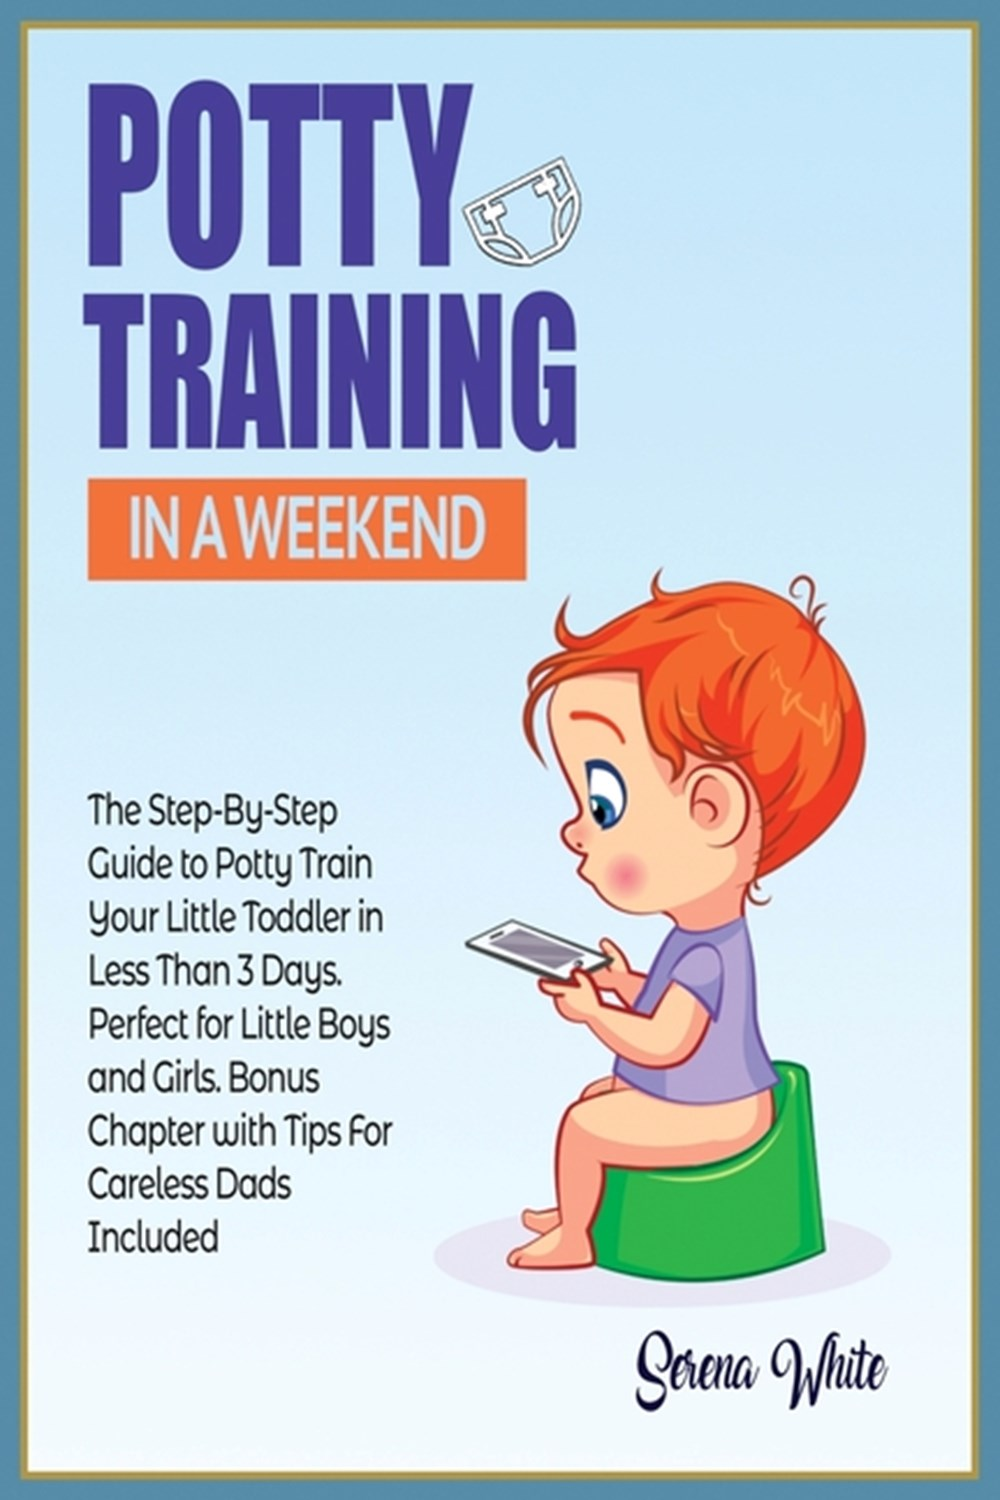 Potty Training in A Weekend The Step-By-Step Guide to Potty Train Your Little Toddler in Less than 3